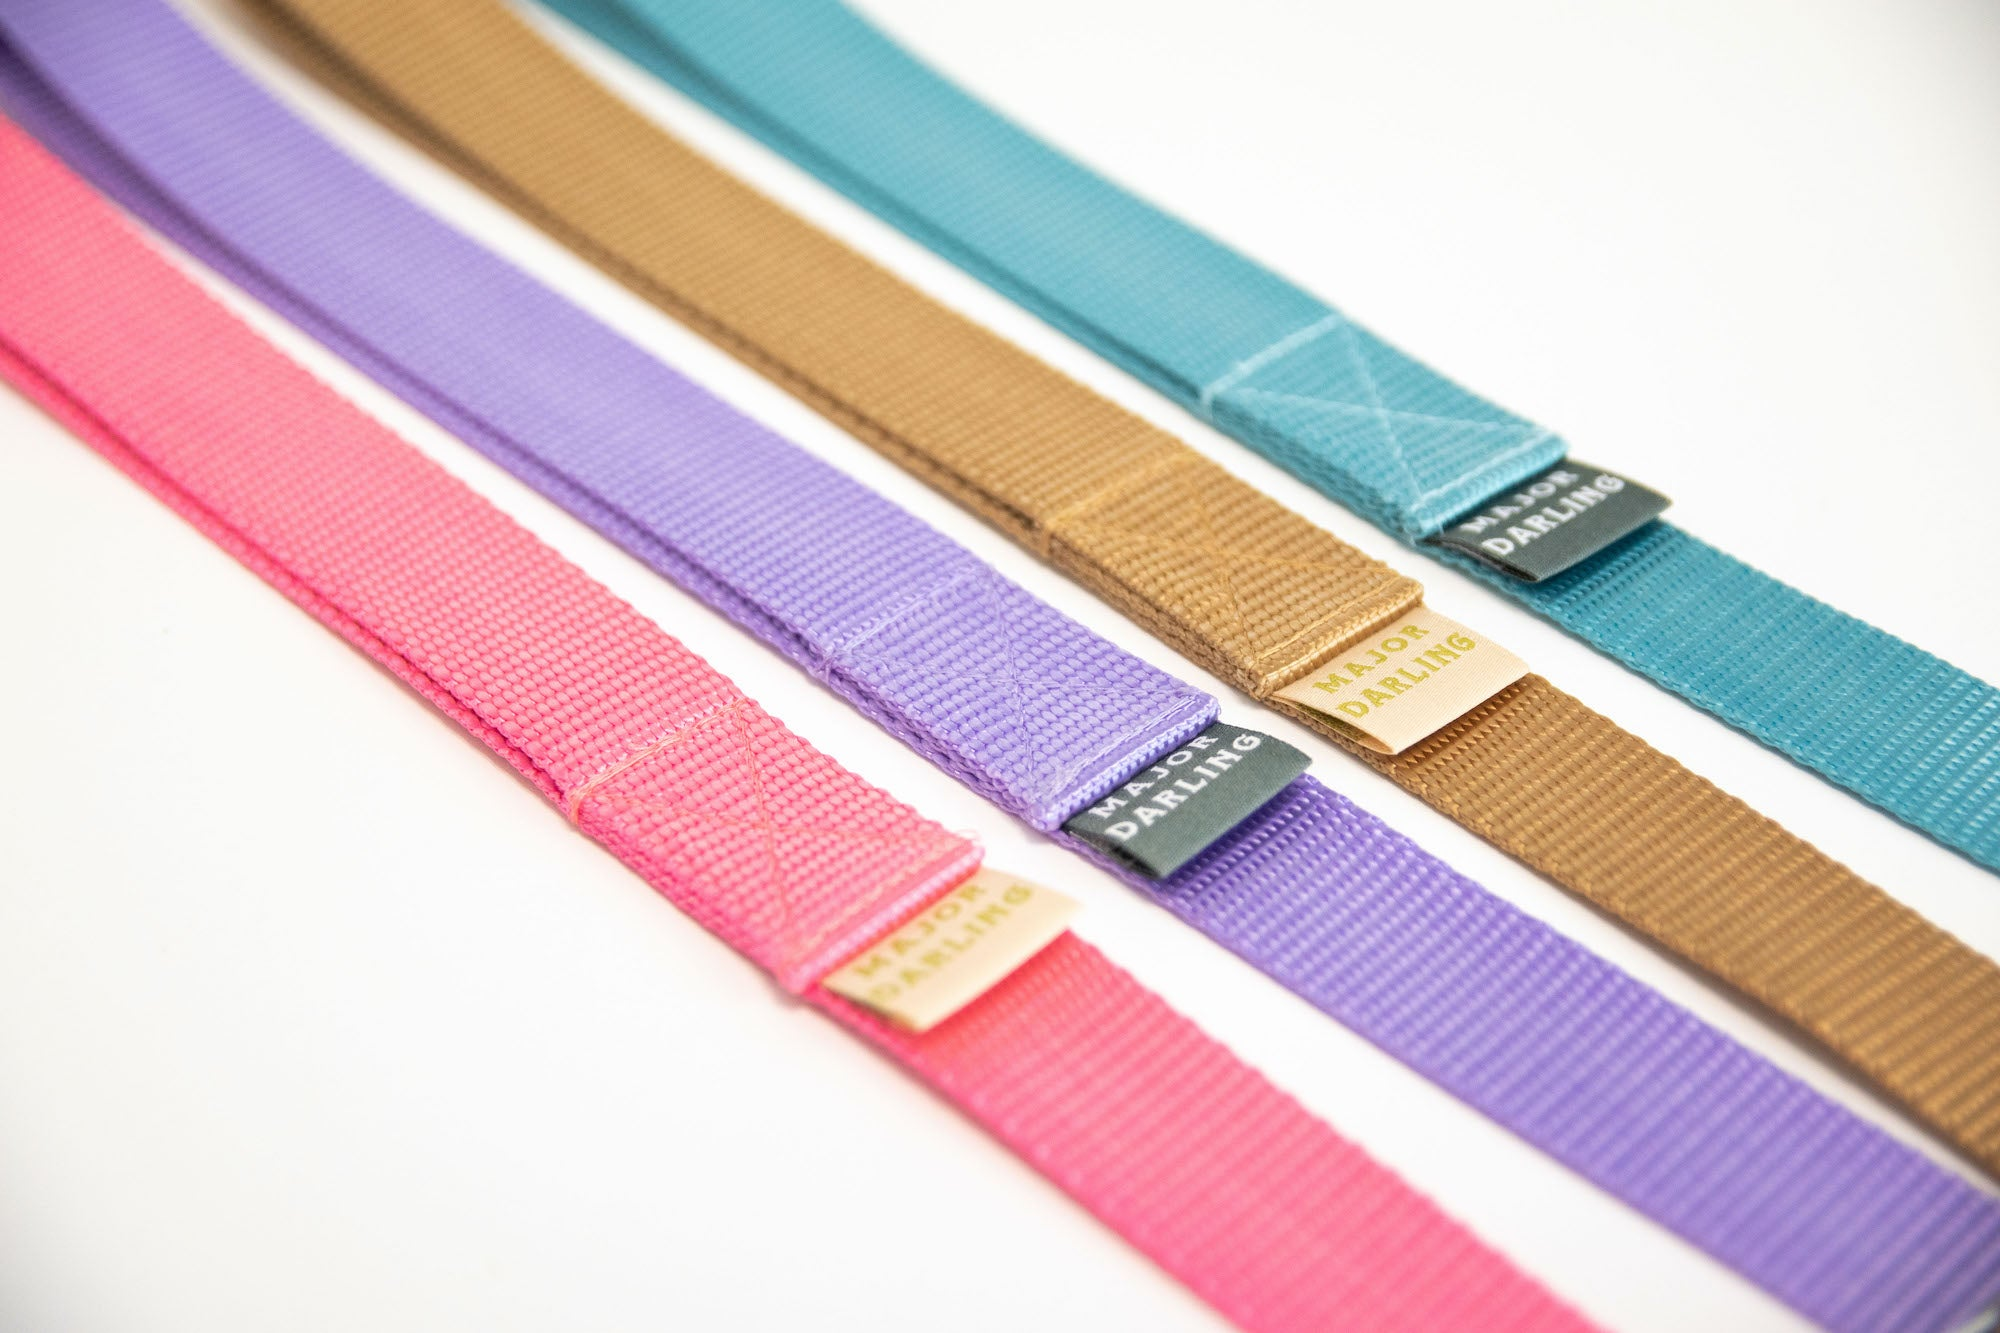 Major darling pet leashes. Perfect for Spring!